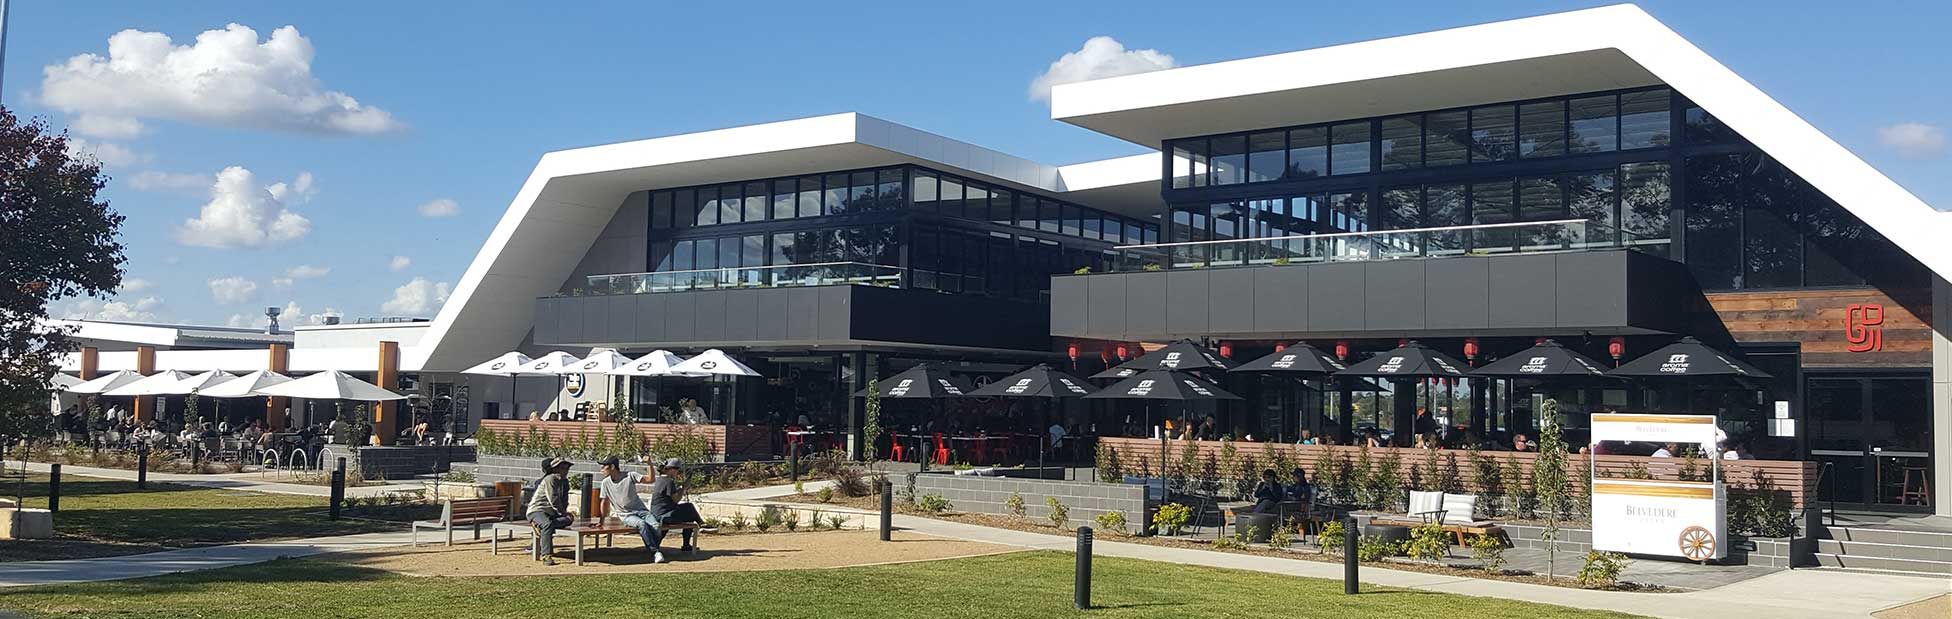 External view of river restaurant precinct on sunny day